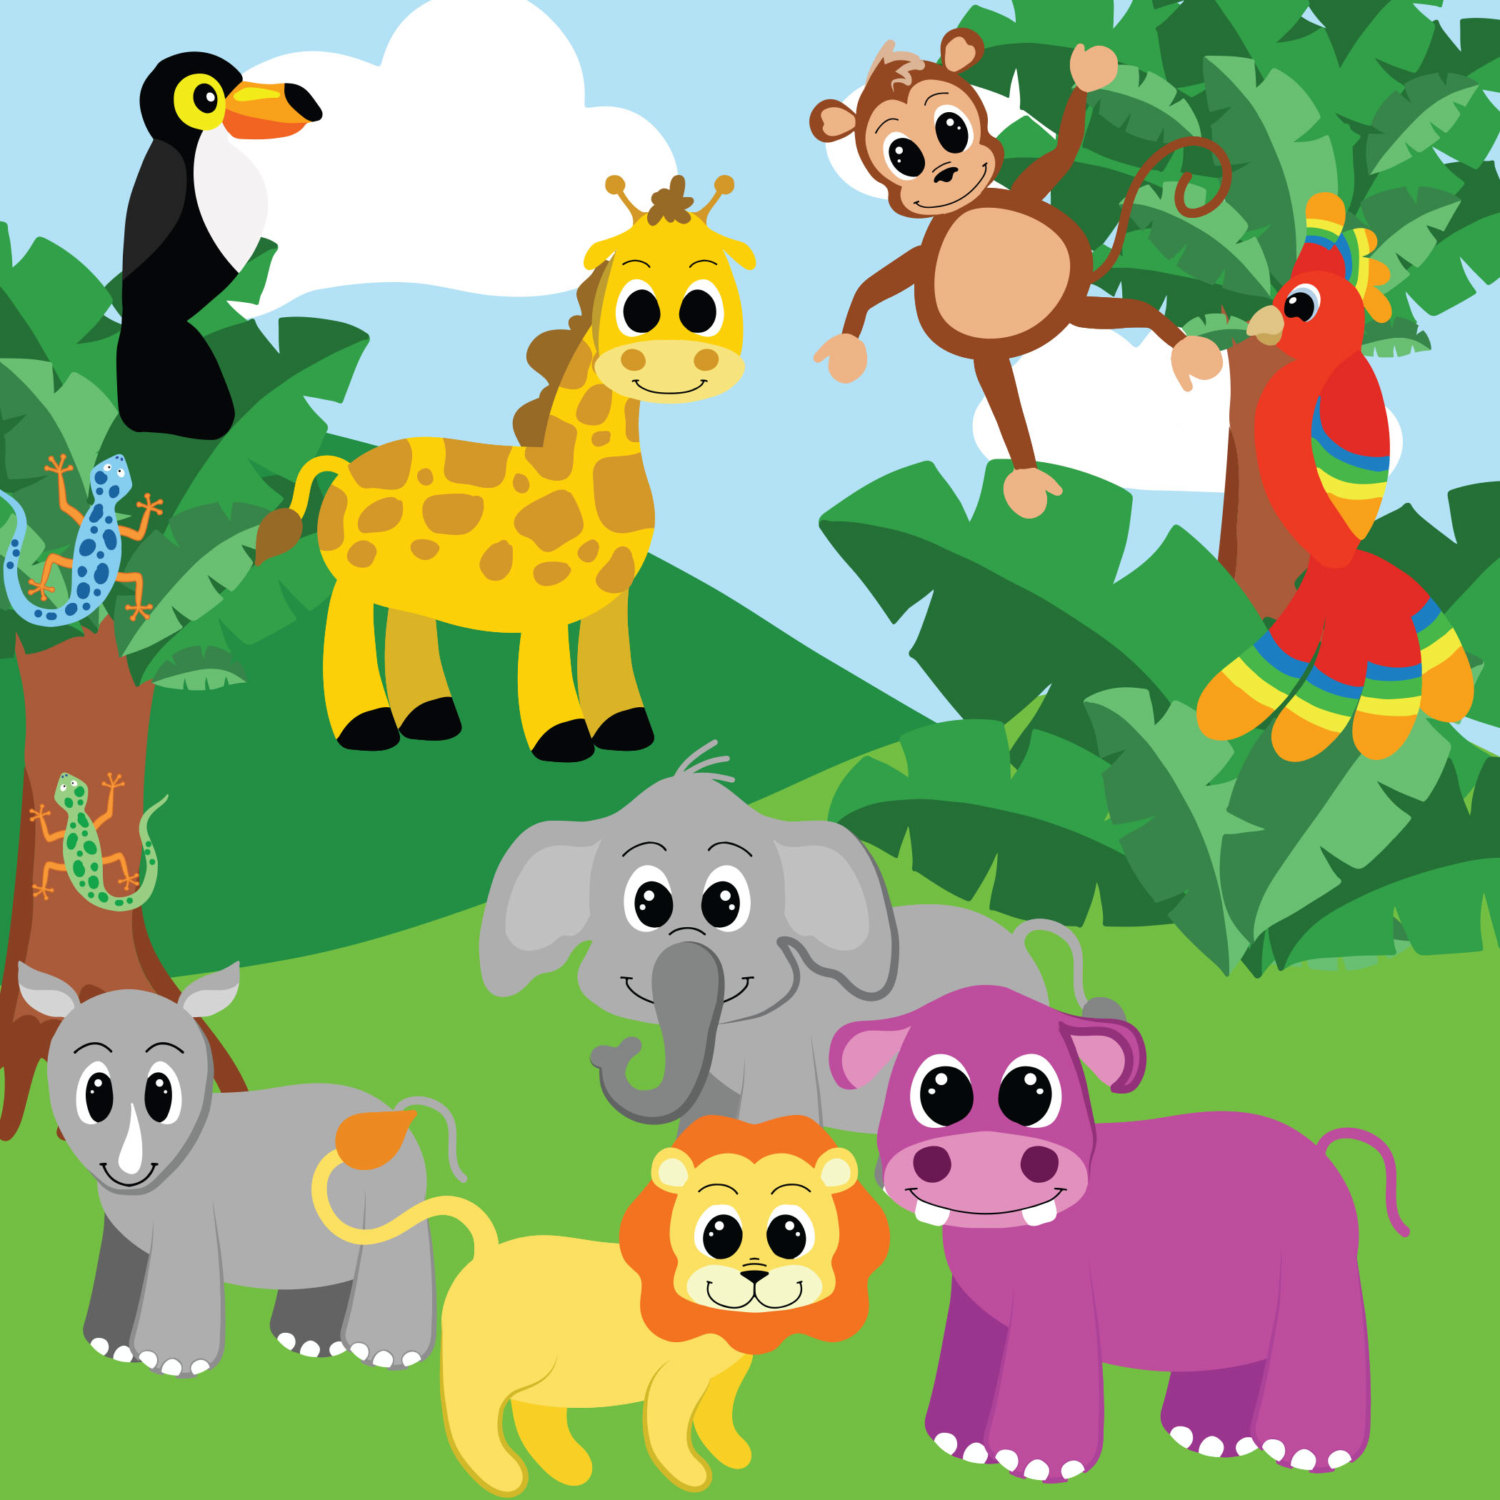 Free Jungle Scene Cliparts, Download Free Clip Art, Free.